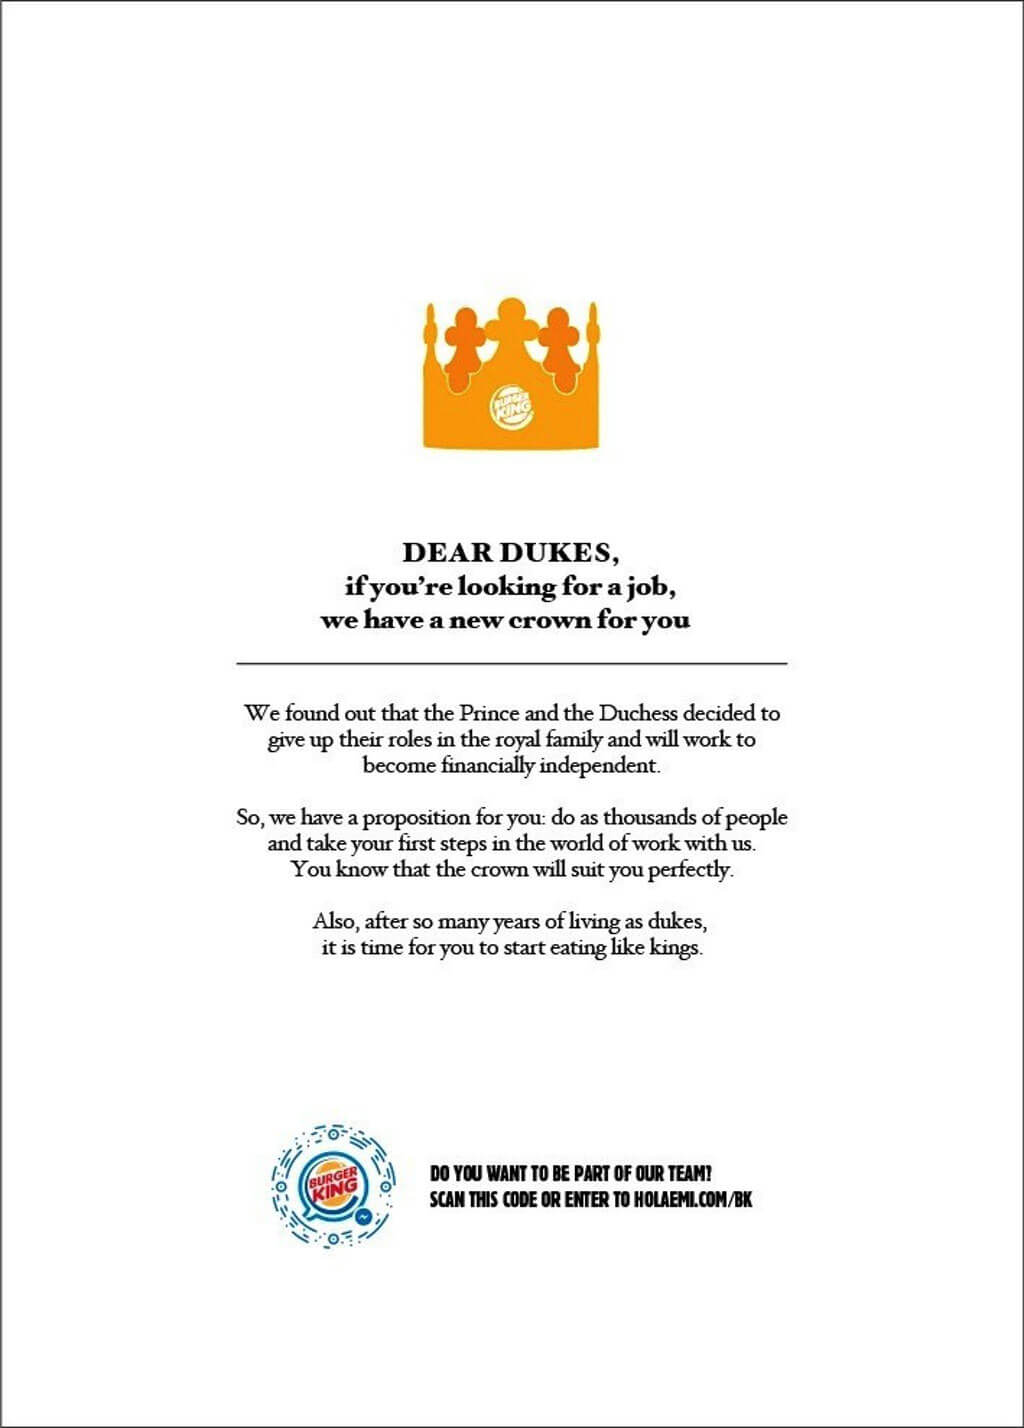 BK Argentina's note to the Dukes & Dutches